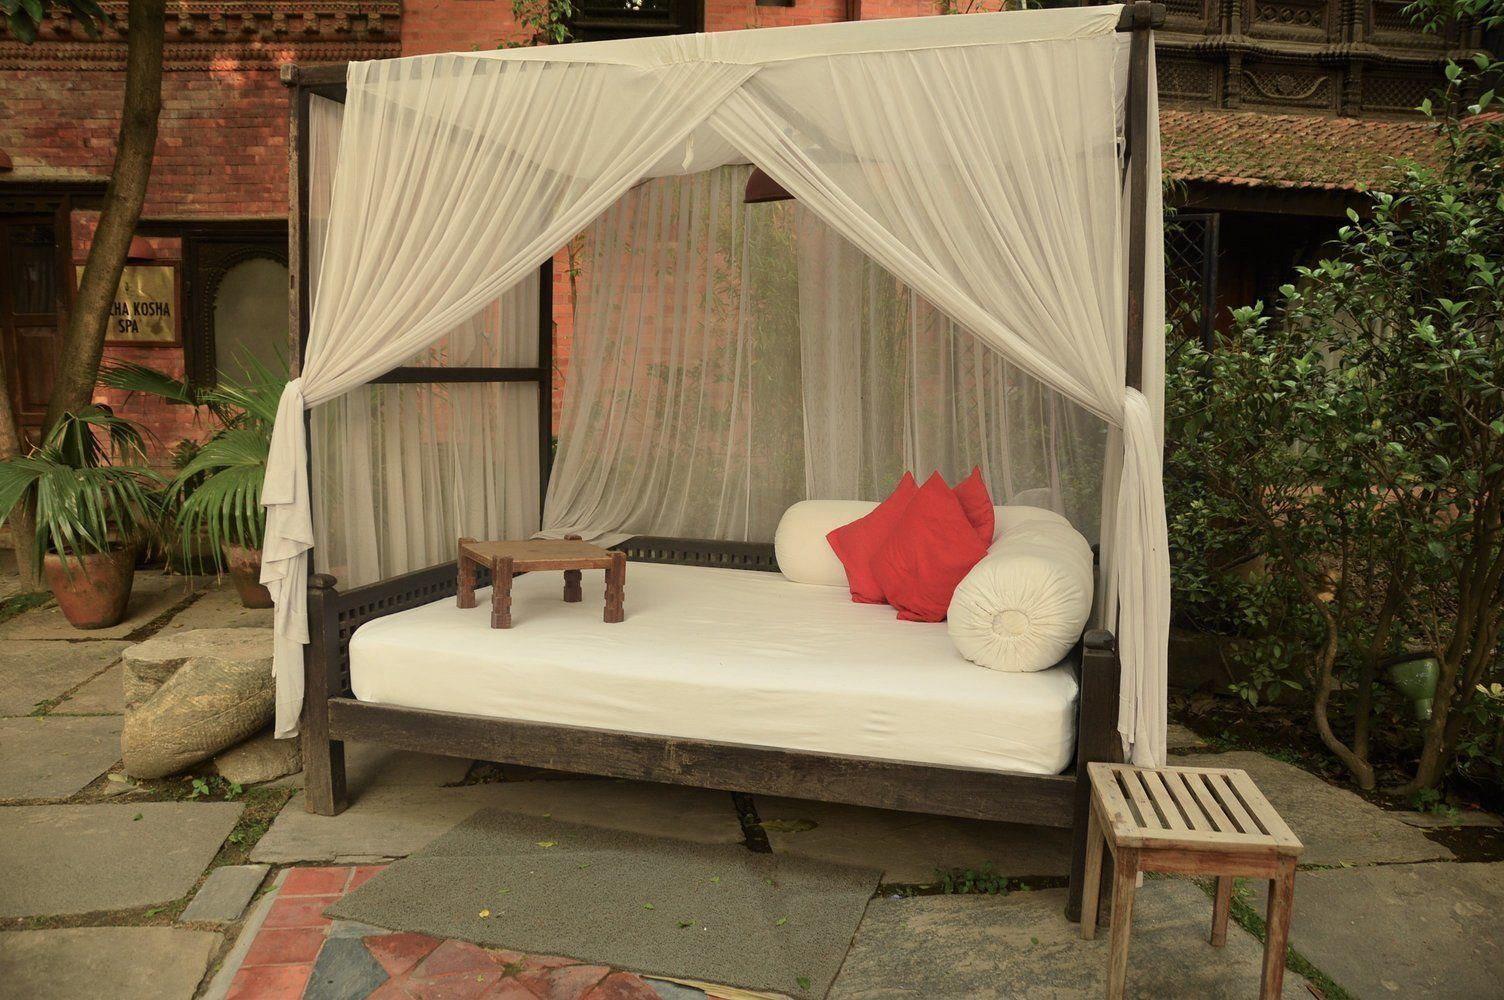 Kathmandu Sightseeing: Enjoy some Luxury post Trek